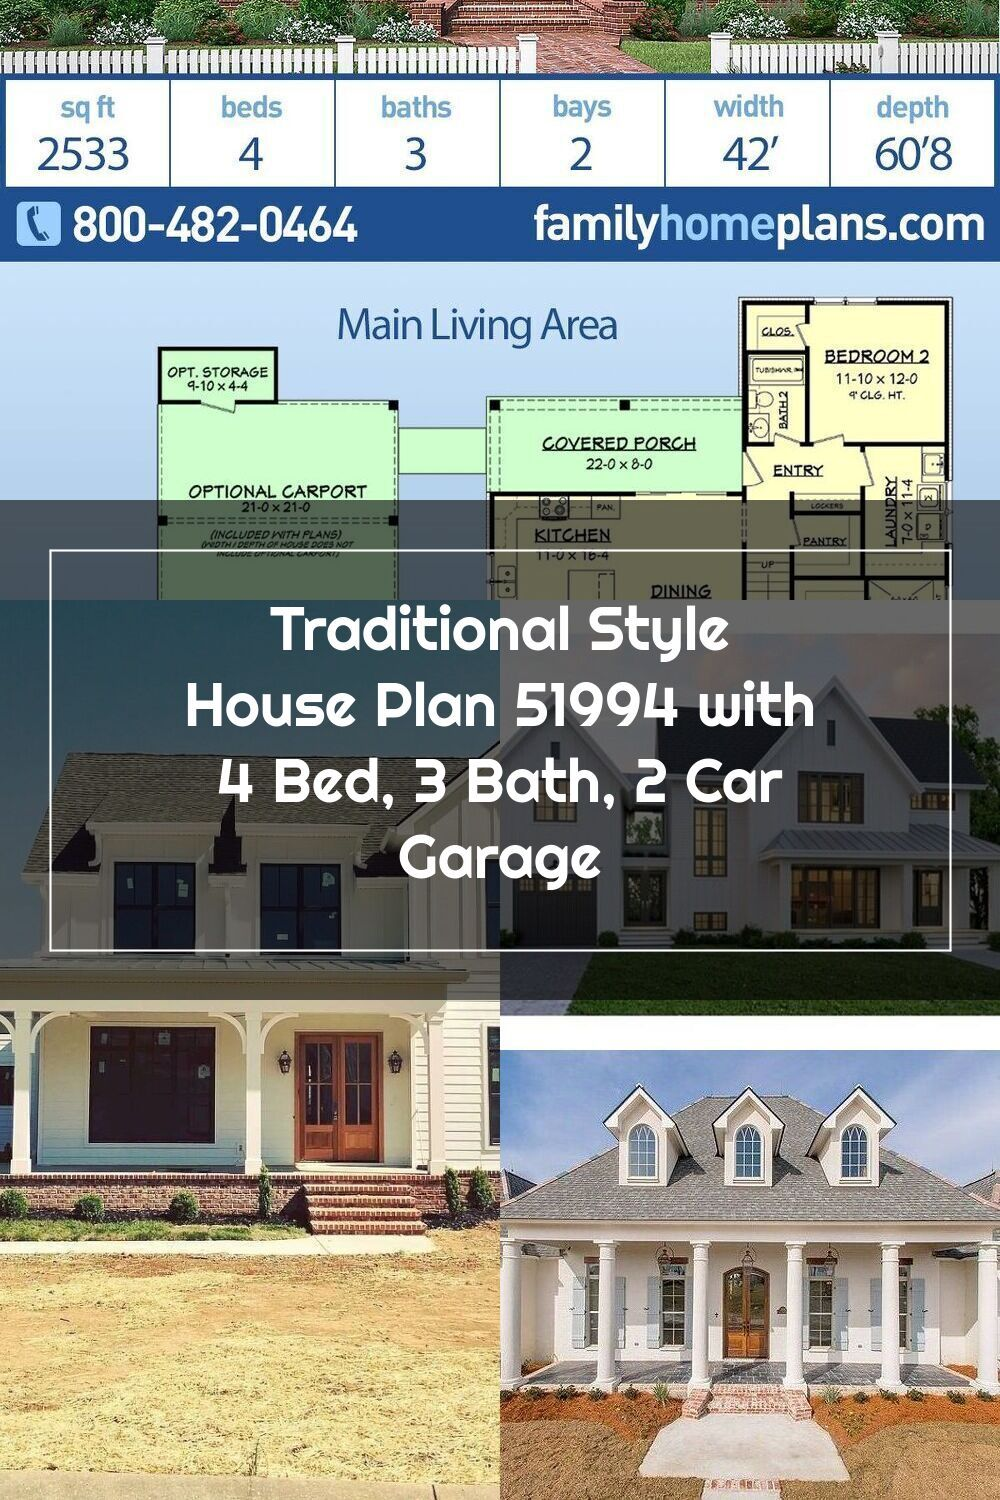 2 Story Country House Plan With Large Porches And An Open Living Concept The First Floor Provides An Larg In 2020 House Plans Farmhouse Country House Plan House Plans